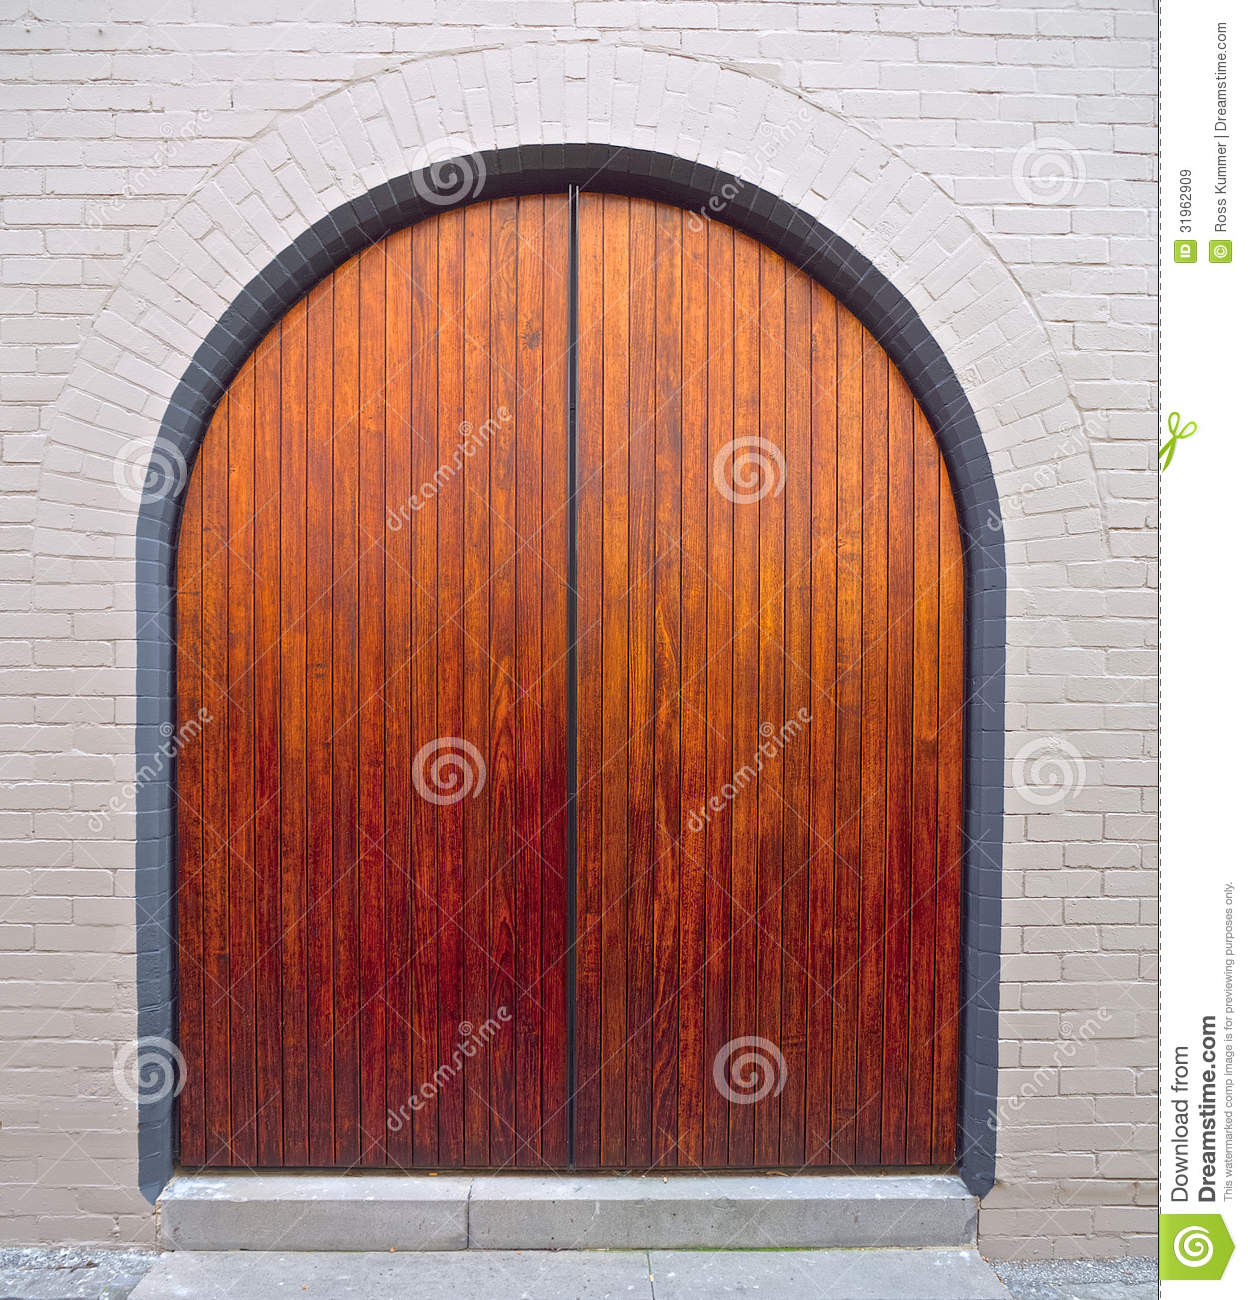 Nice wooden arched door royalty free stock images image for Big entrance door